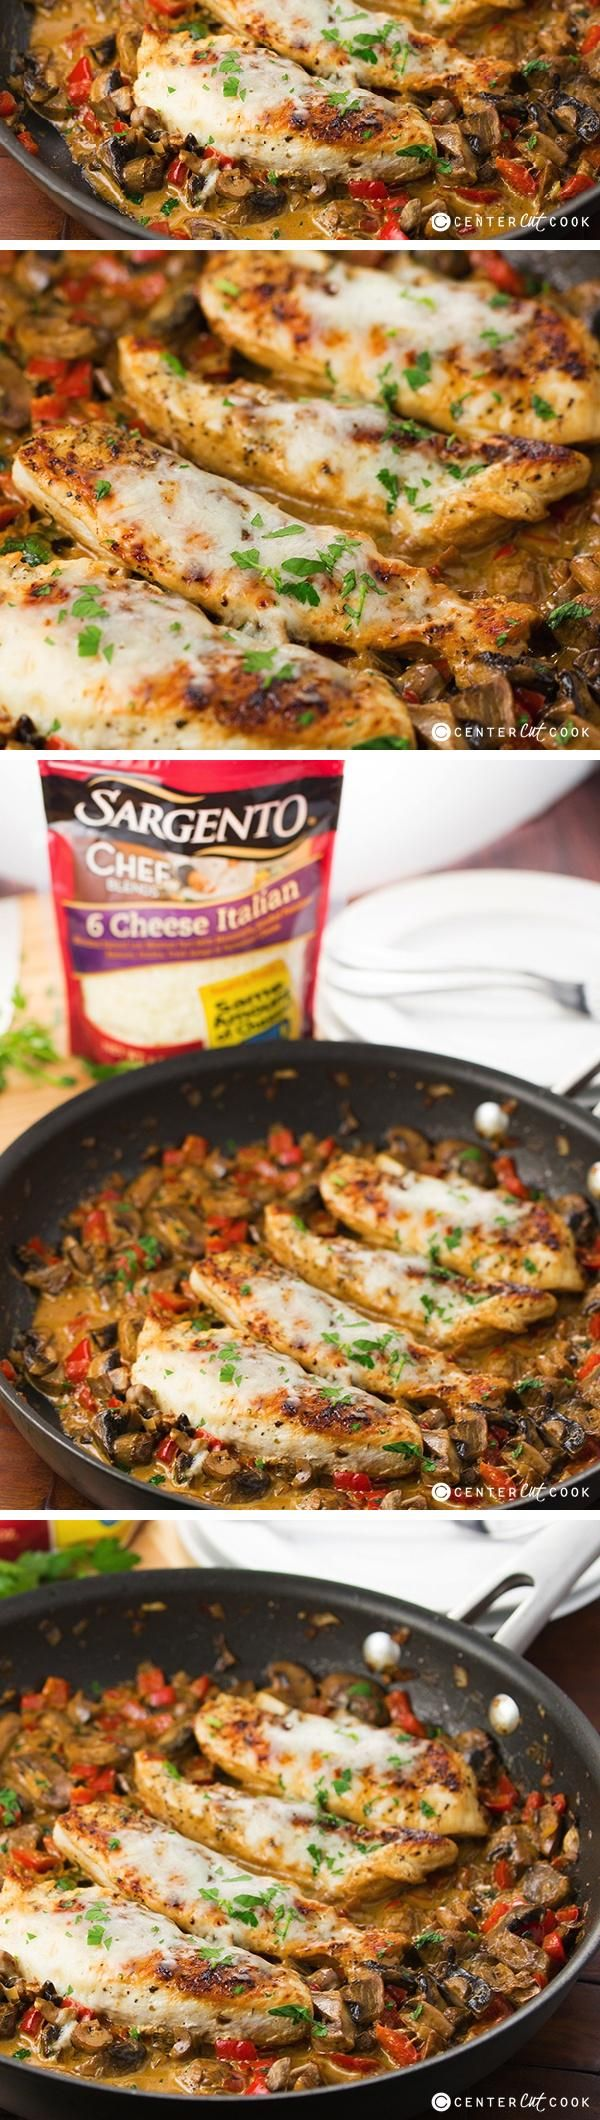 This CHEESY ITALIAN CHICKEN is made entirely in ONE SKILLET for a quick and easy weeknight dinner that requires minimum effort to make and clean up. If you're looking for a great chicken recipe to try with your family, look no further.